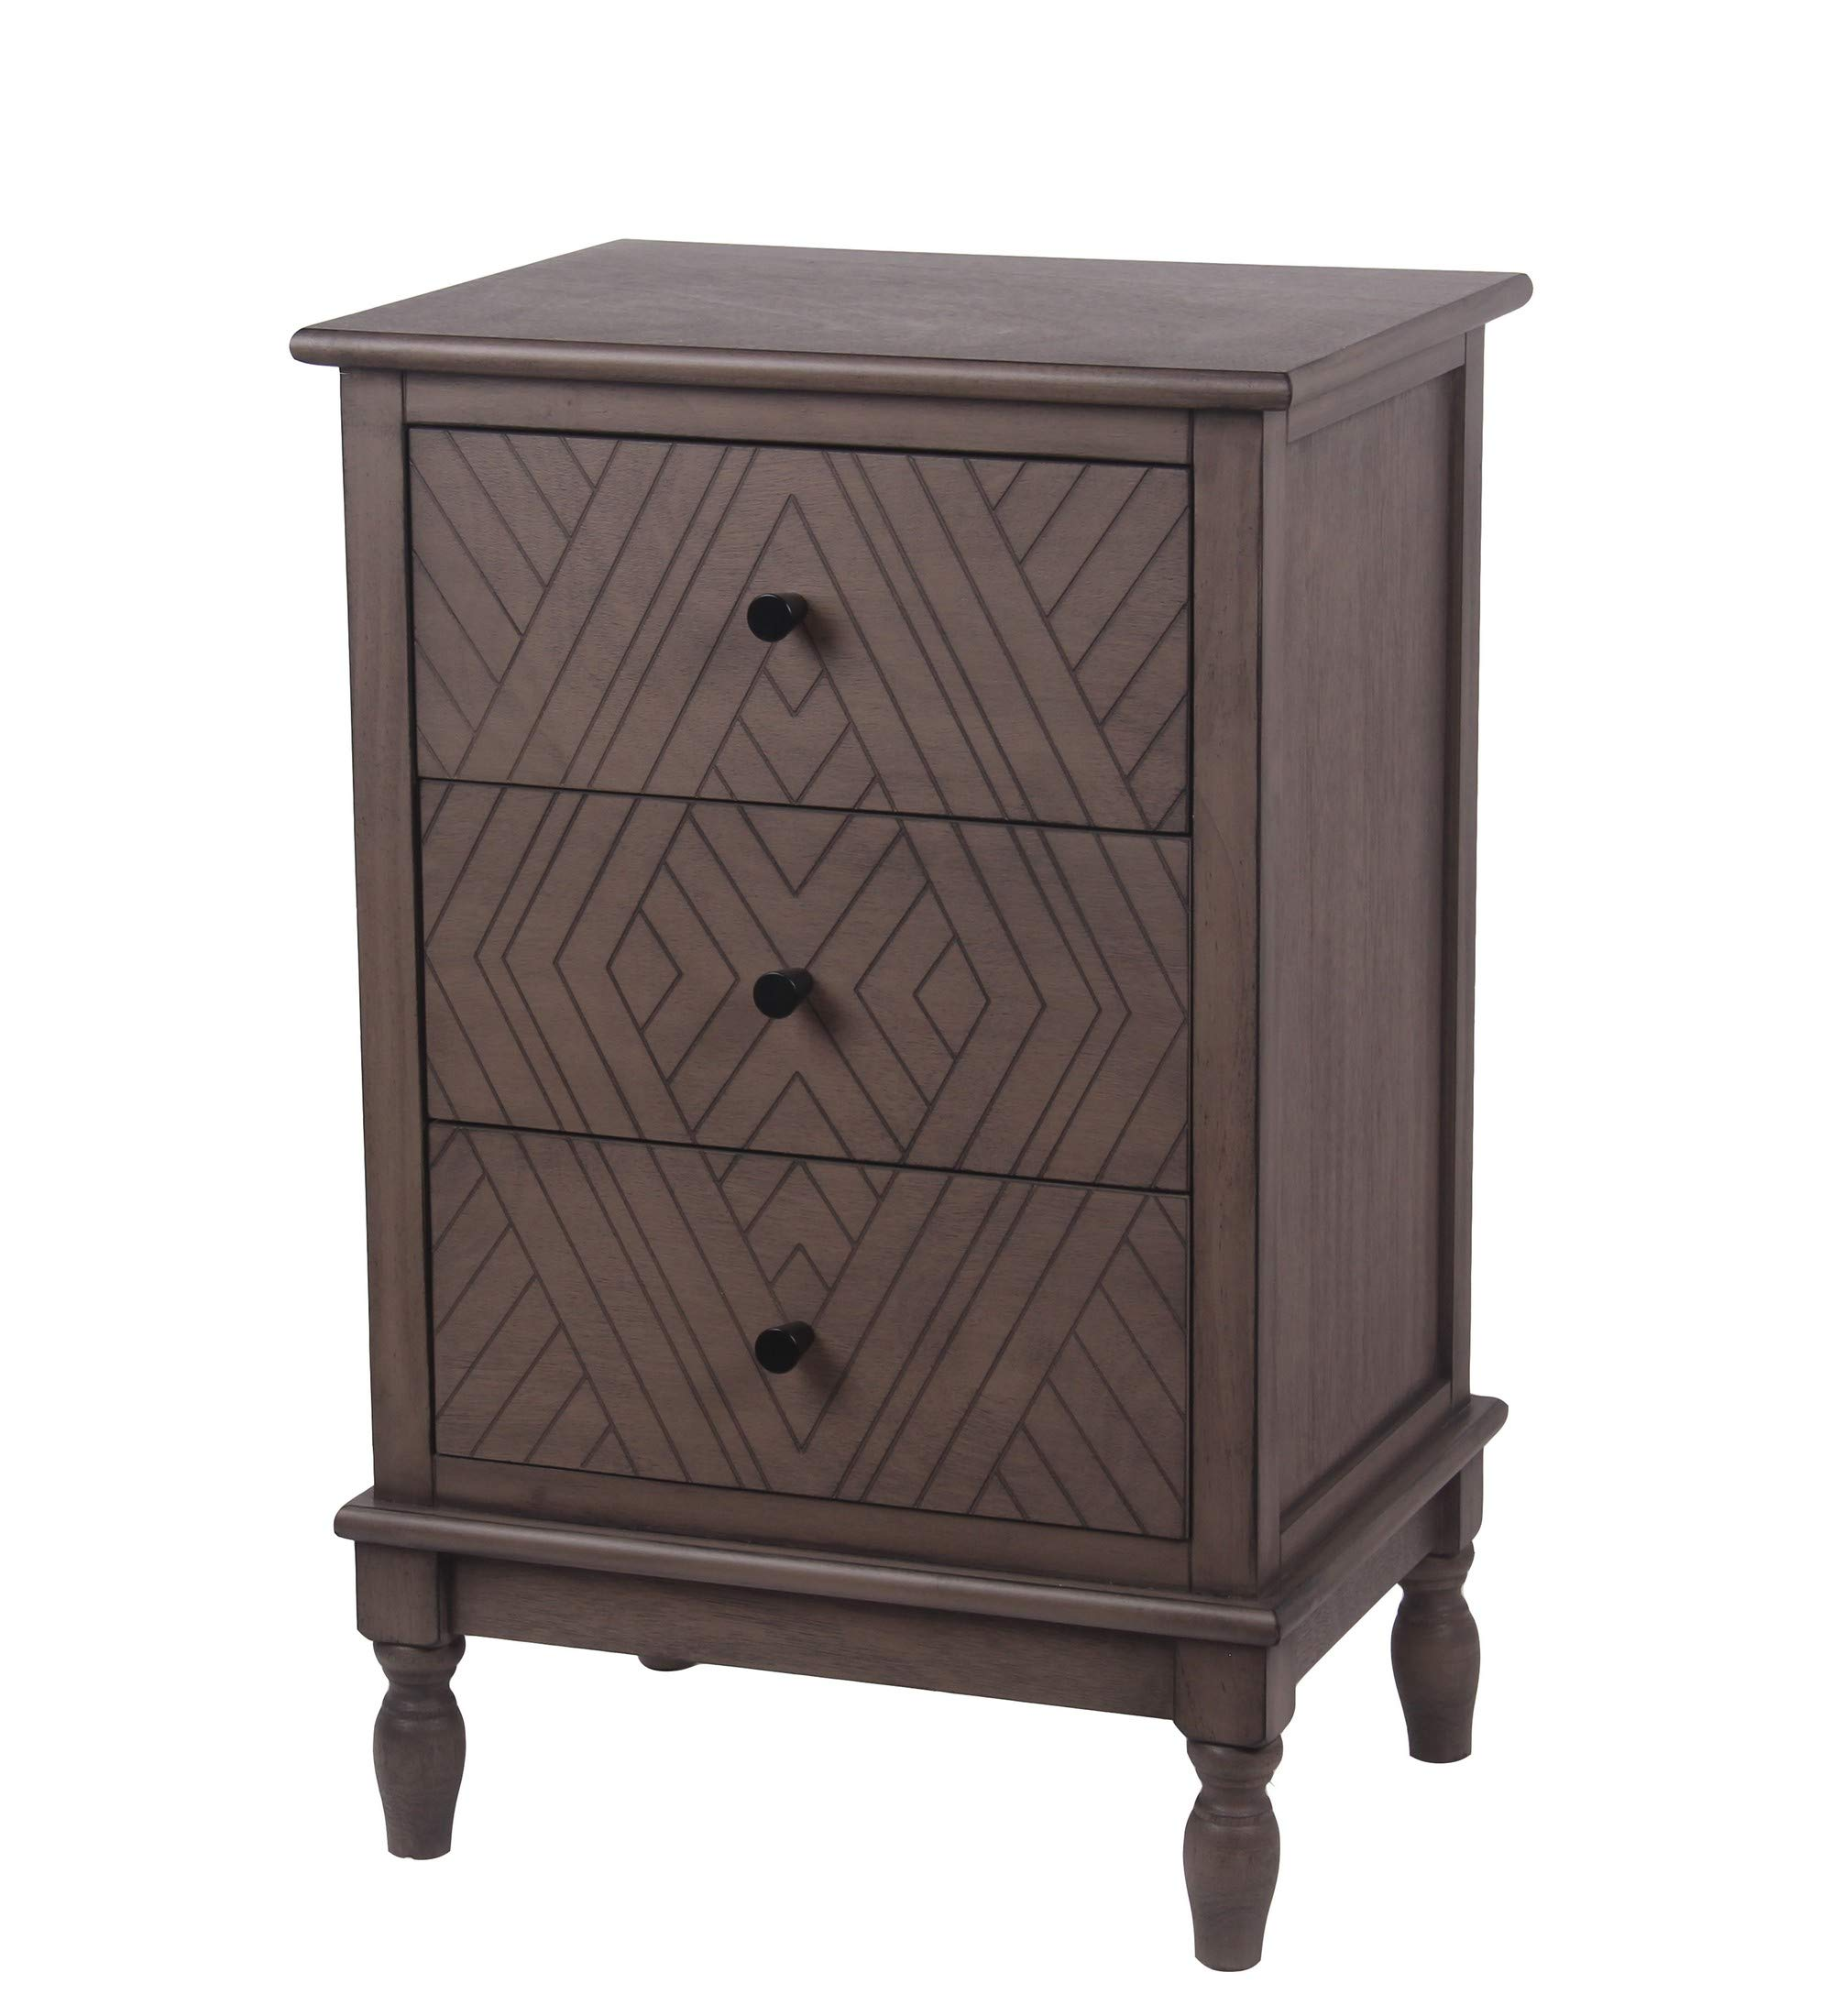 Privilege Vintage Ash 3 Drawer Accent Chest 28648 by Privilege